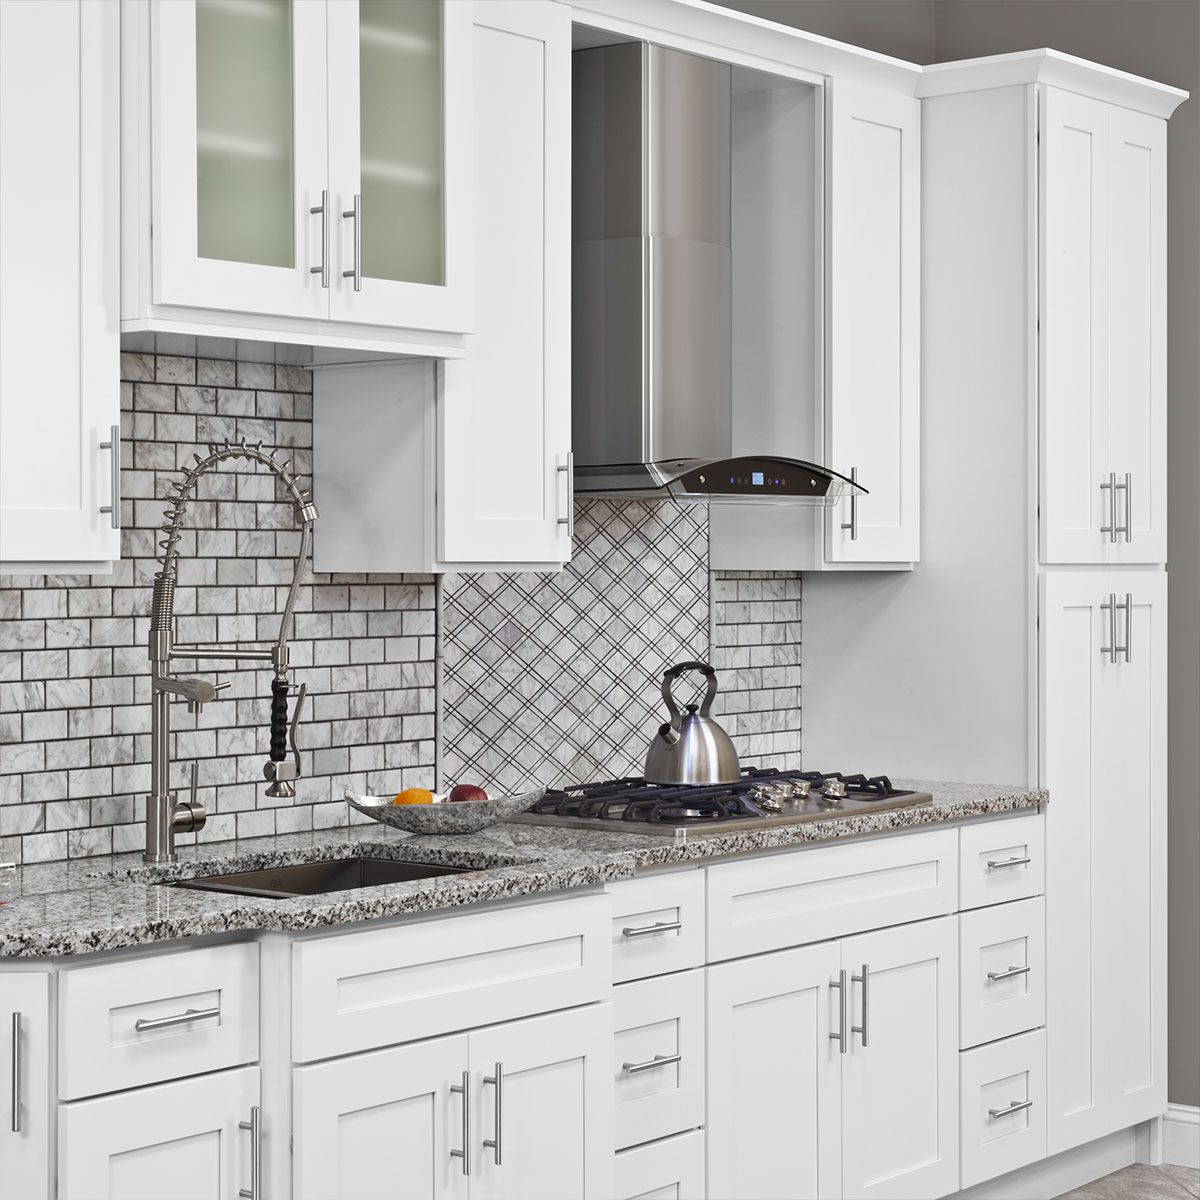 Pin By Kenyatta Dixon On Home Sweet Home Kitchen Cabinets For Sale Solid Wood Kitchen Cabinets Solid Wood Kitchens